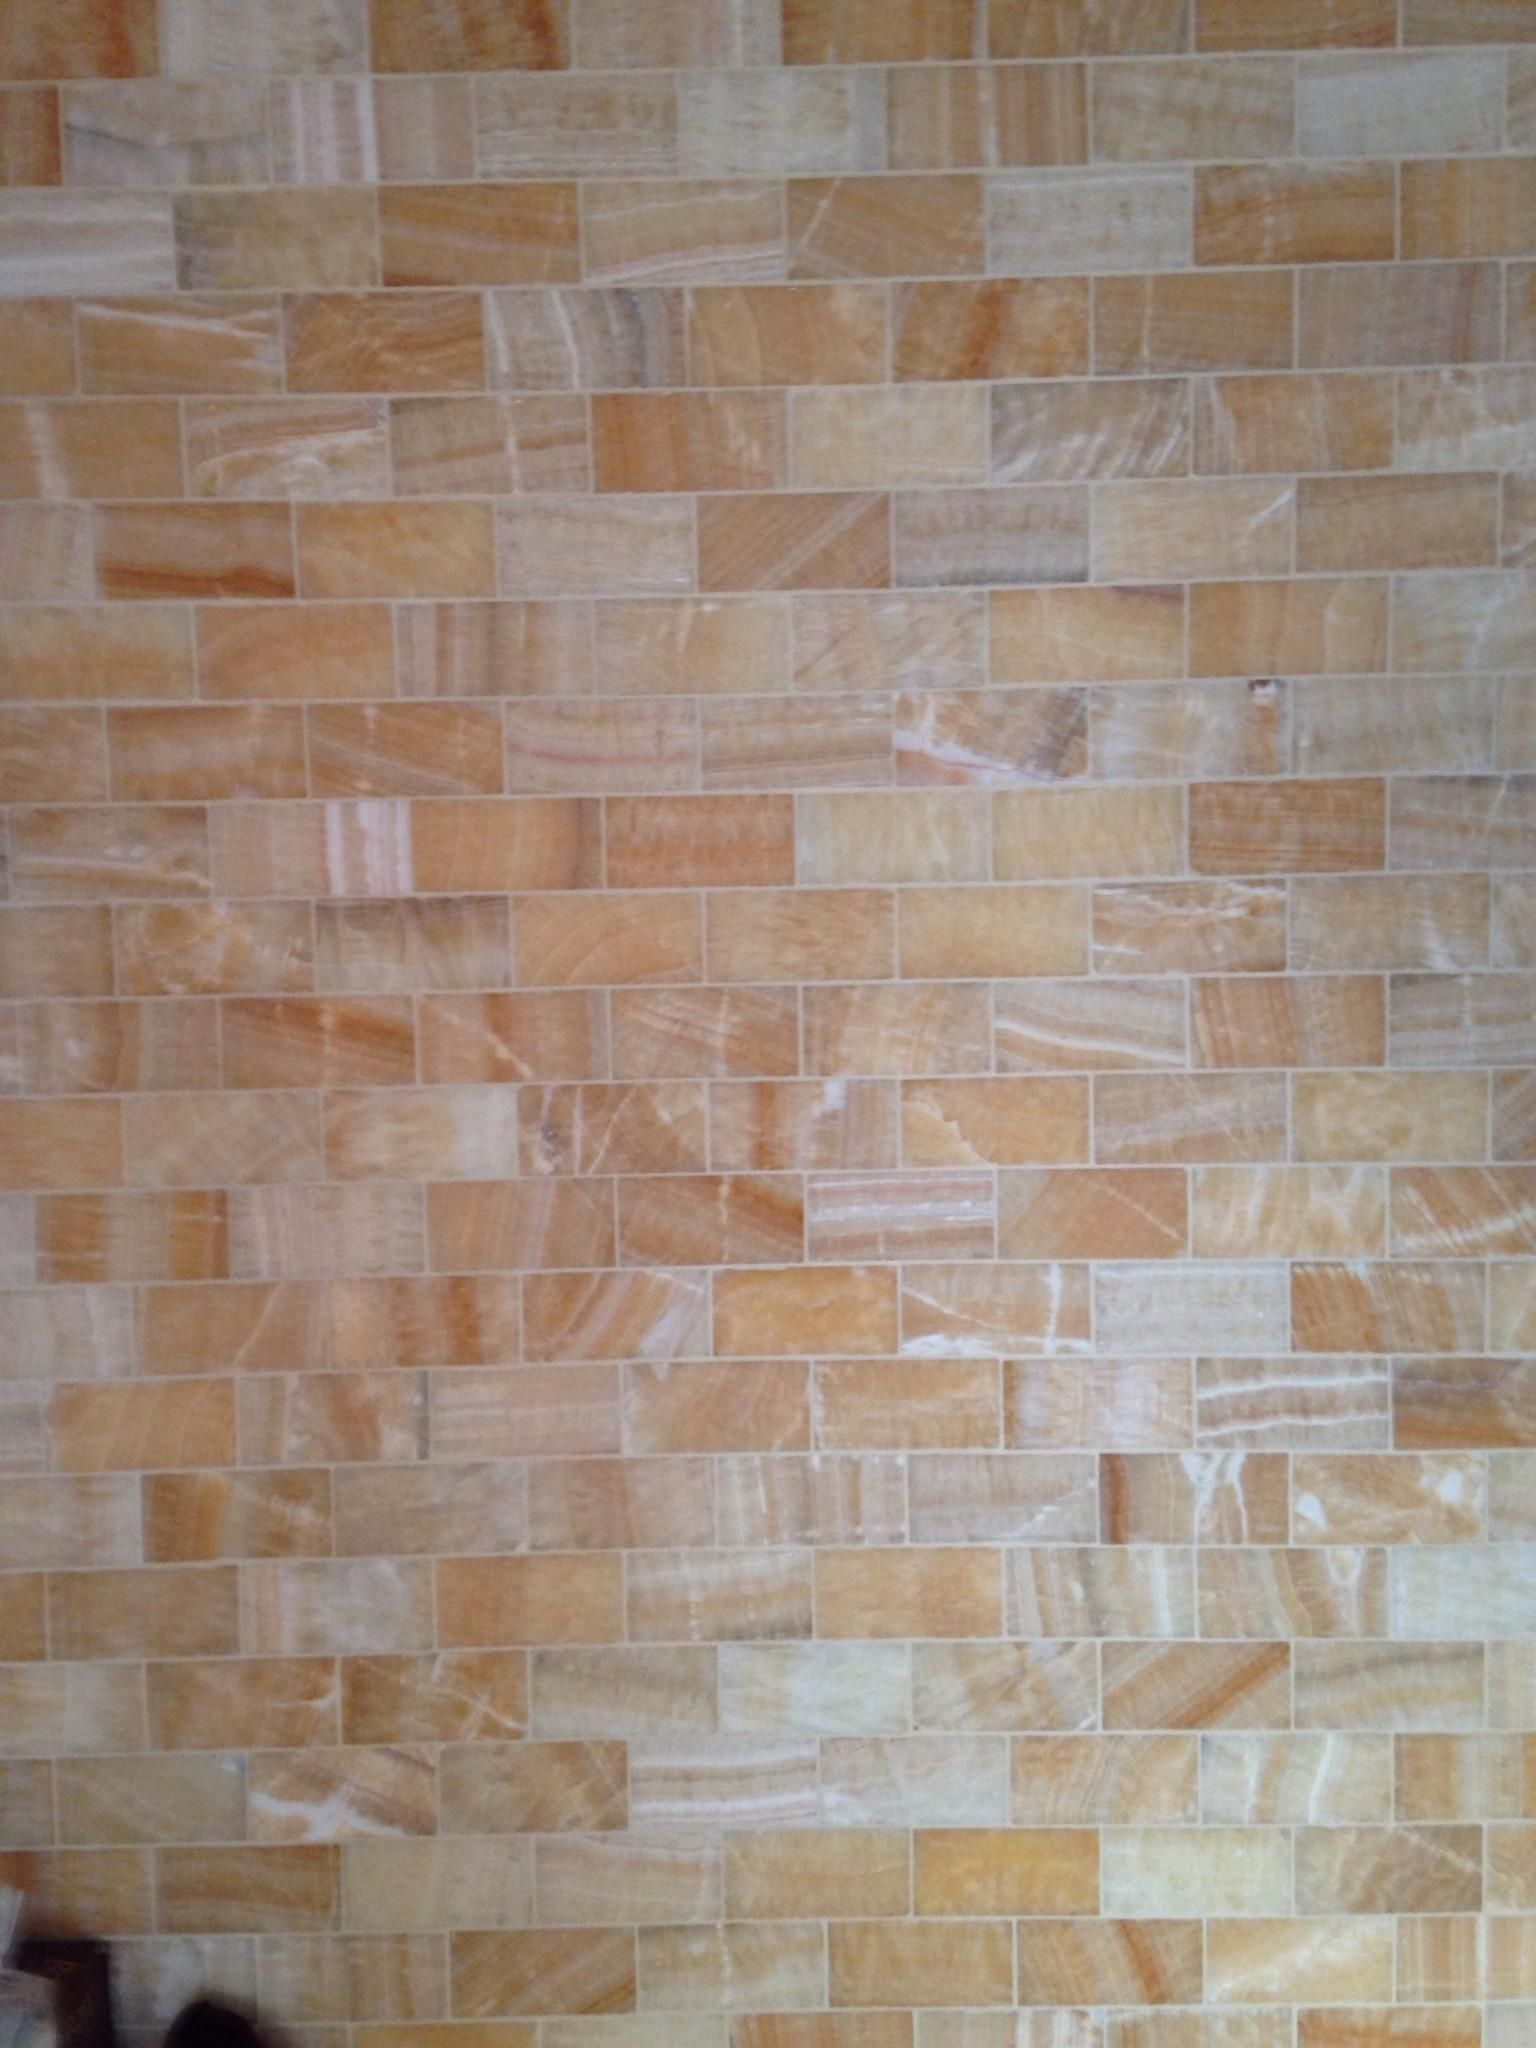 Honey Onyx Subway Tile On A Shower Wall Can Brighten Up A Dark